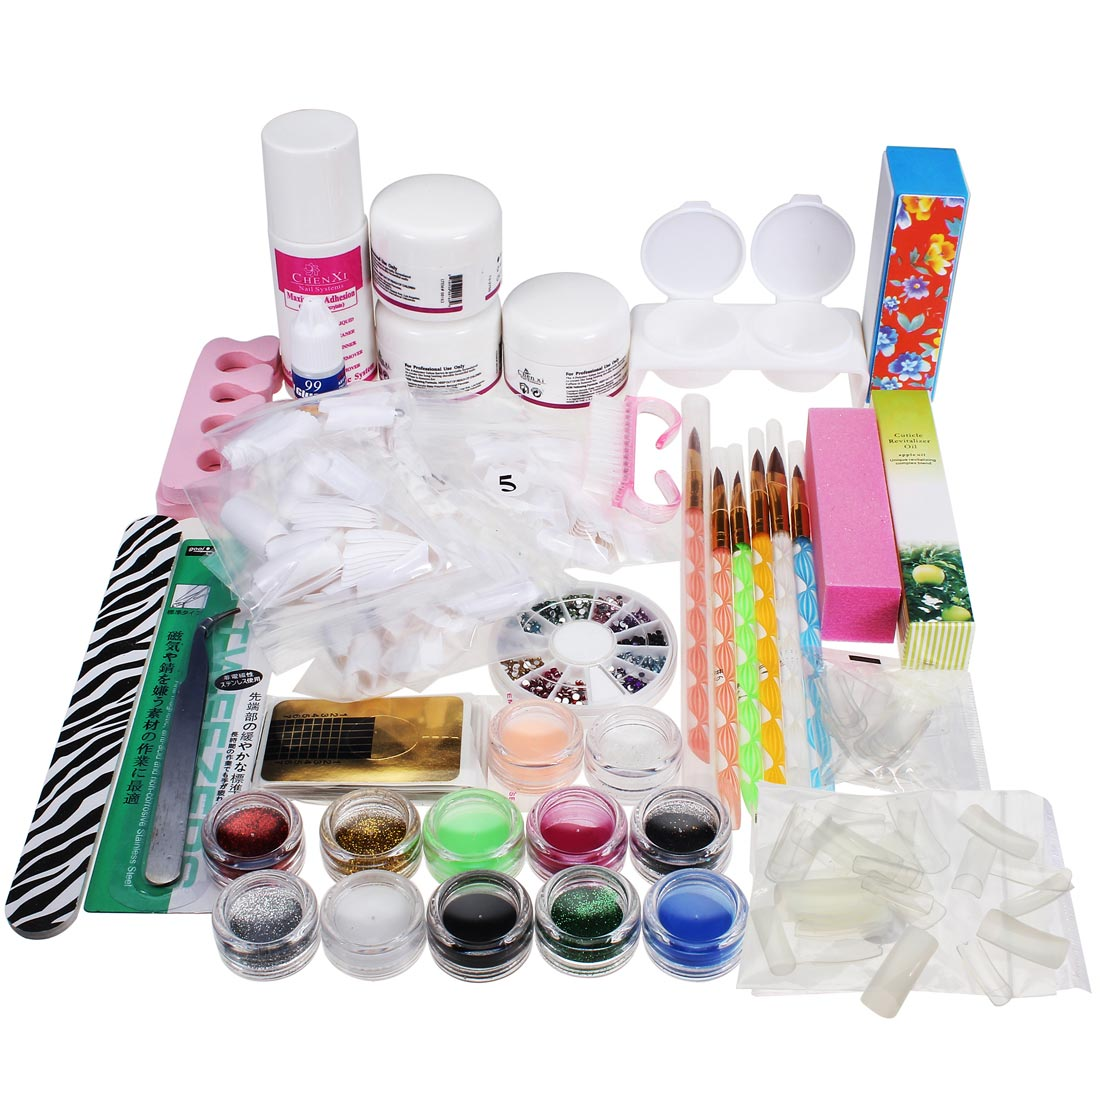 Nail Art Ideas » Professional Nail Art Design Kits - Pictures of ...